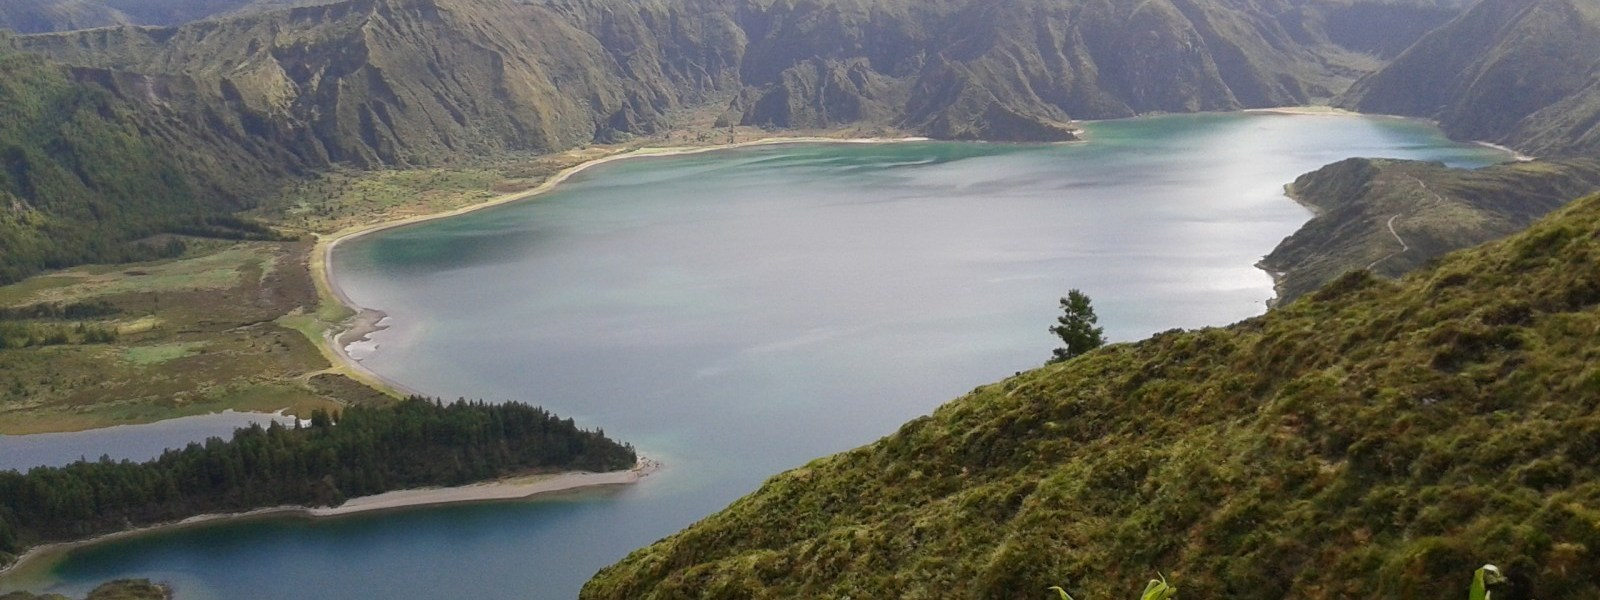 Eco-tourism in the Azores